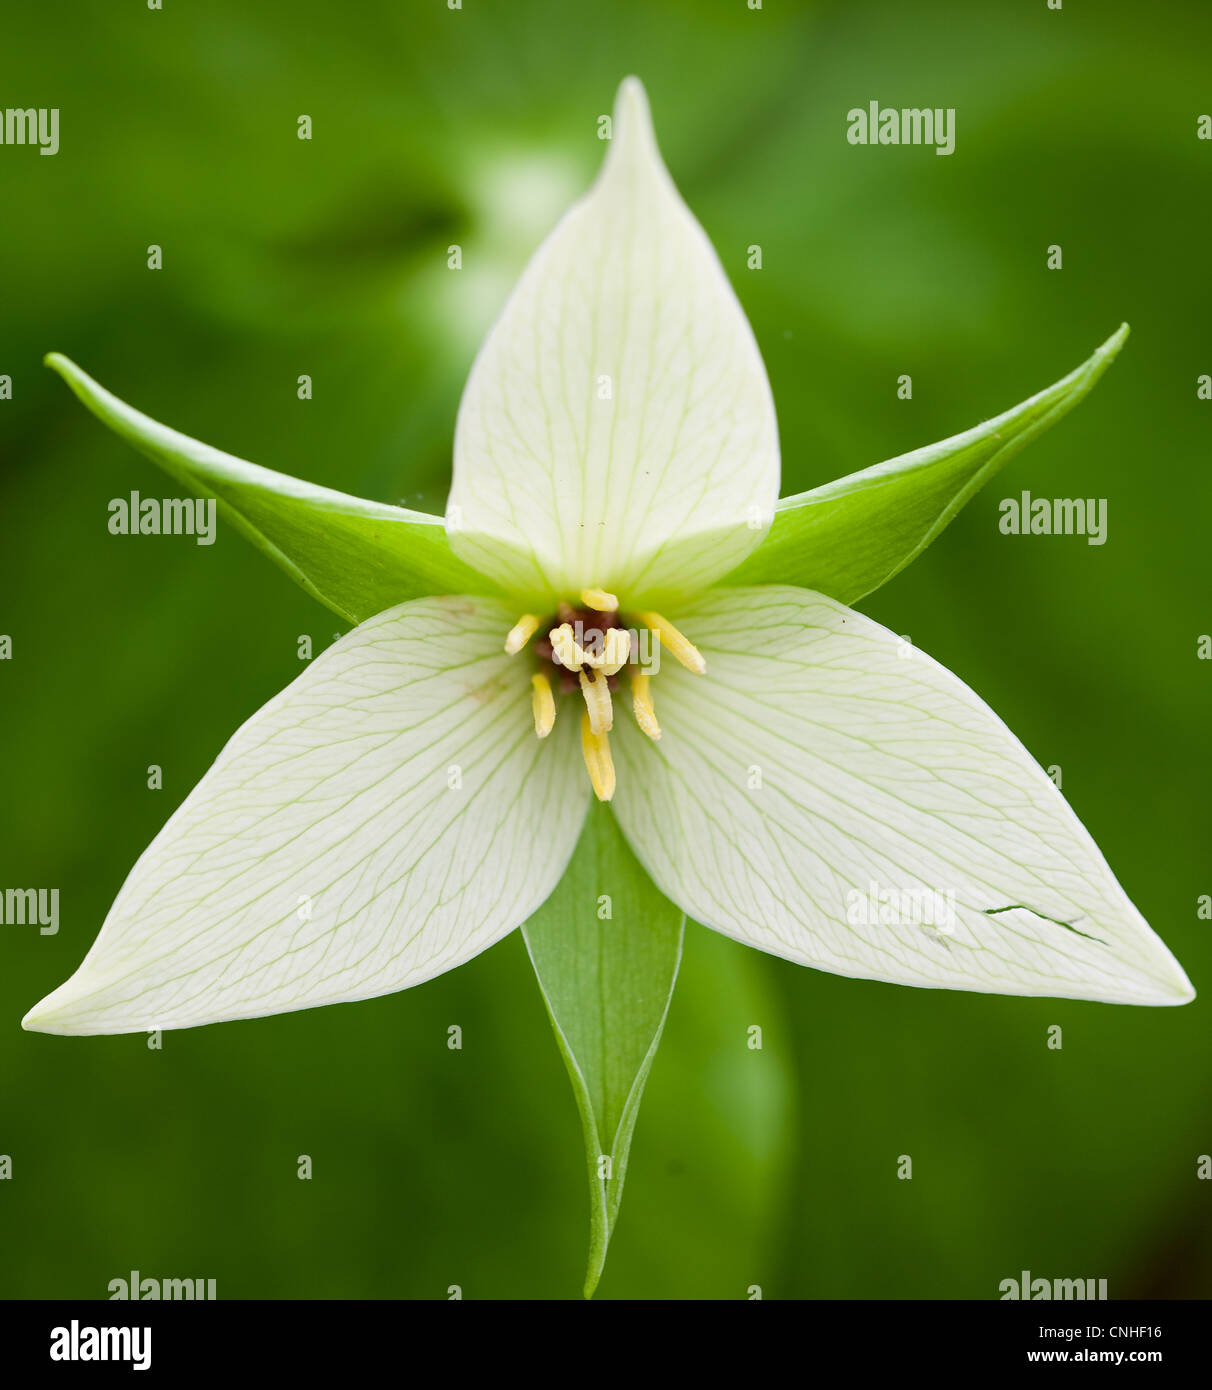 The Sweet White Trillium is one of the rarer forms of trillium.  It grows in the mountains in the states of Tennessee, - Stock Image